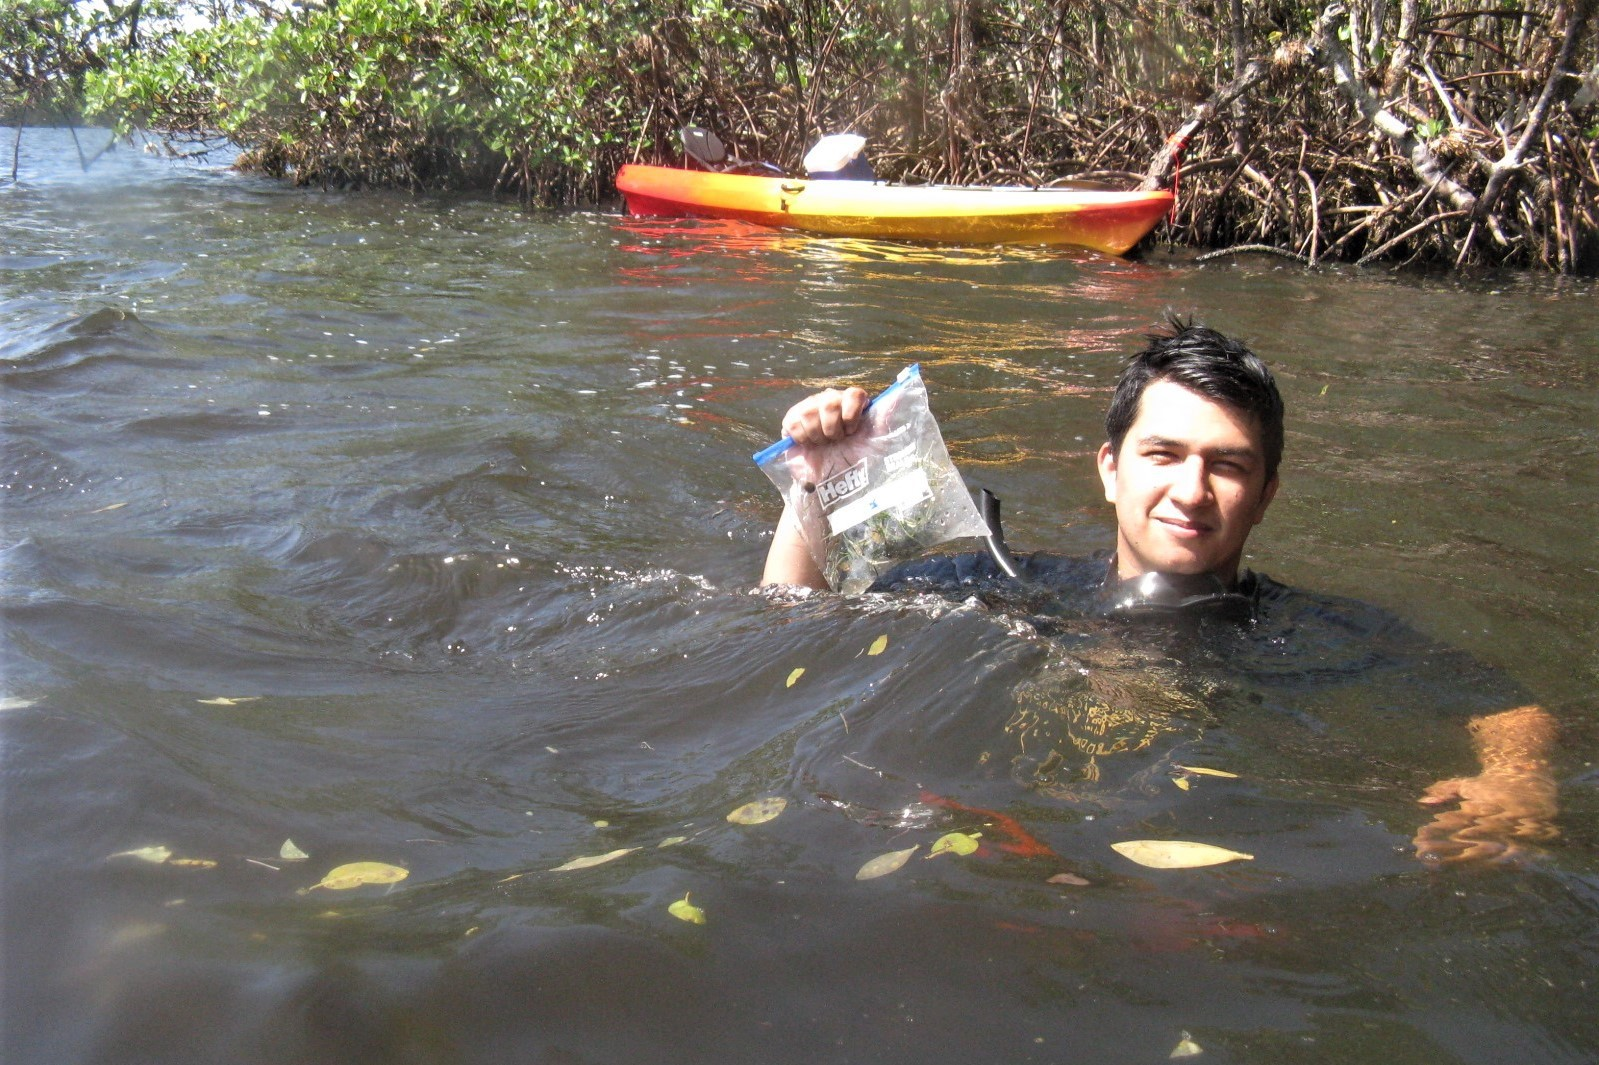 an intern taking a break from kayaking to go for a swim in the waters of biscayne bay